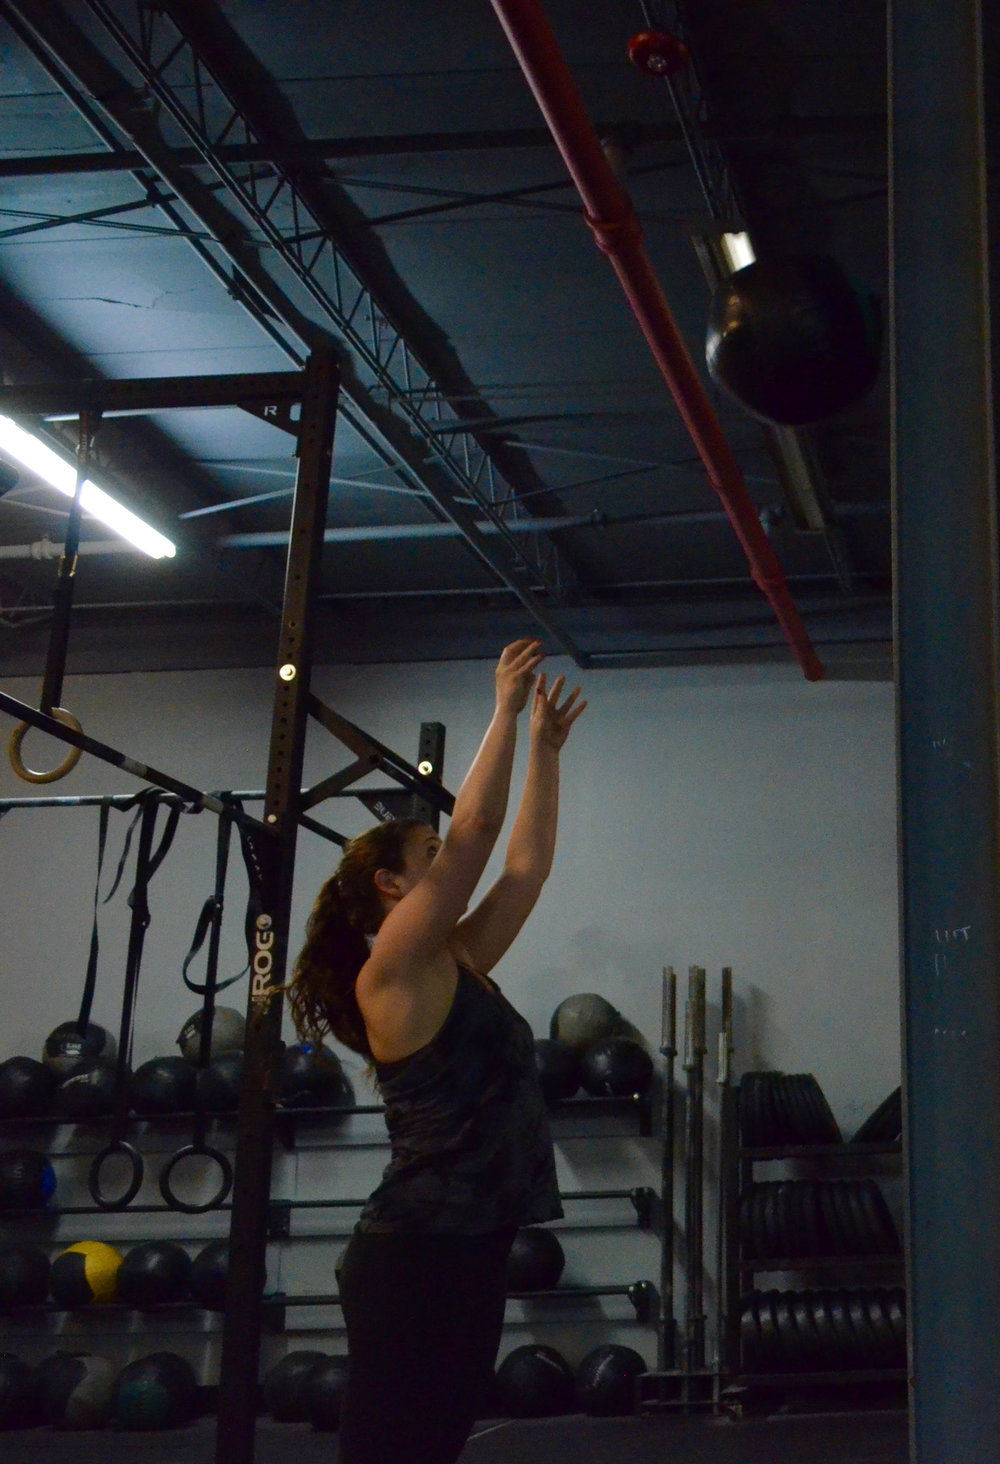 """CrossFit Deep is the first and only CrossFit gym where I have been a member. I can't see myself joining another gym either! CrossFit Deep is the most supportive workout environment I can imagine. The coaches are wildly knowledgeable and encouraging, and there's nothing like bonding with friends over dying in the same workout."""